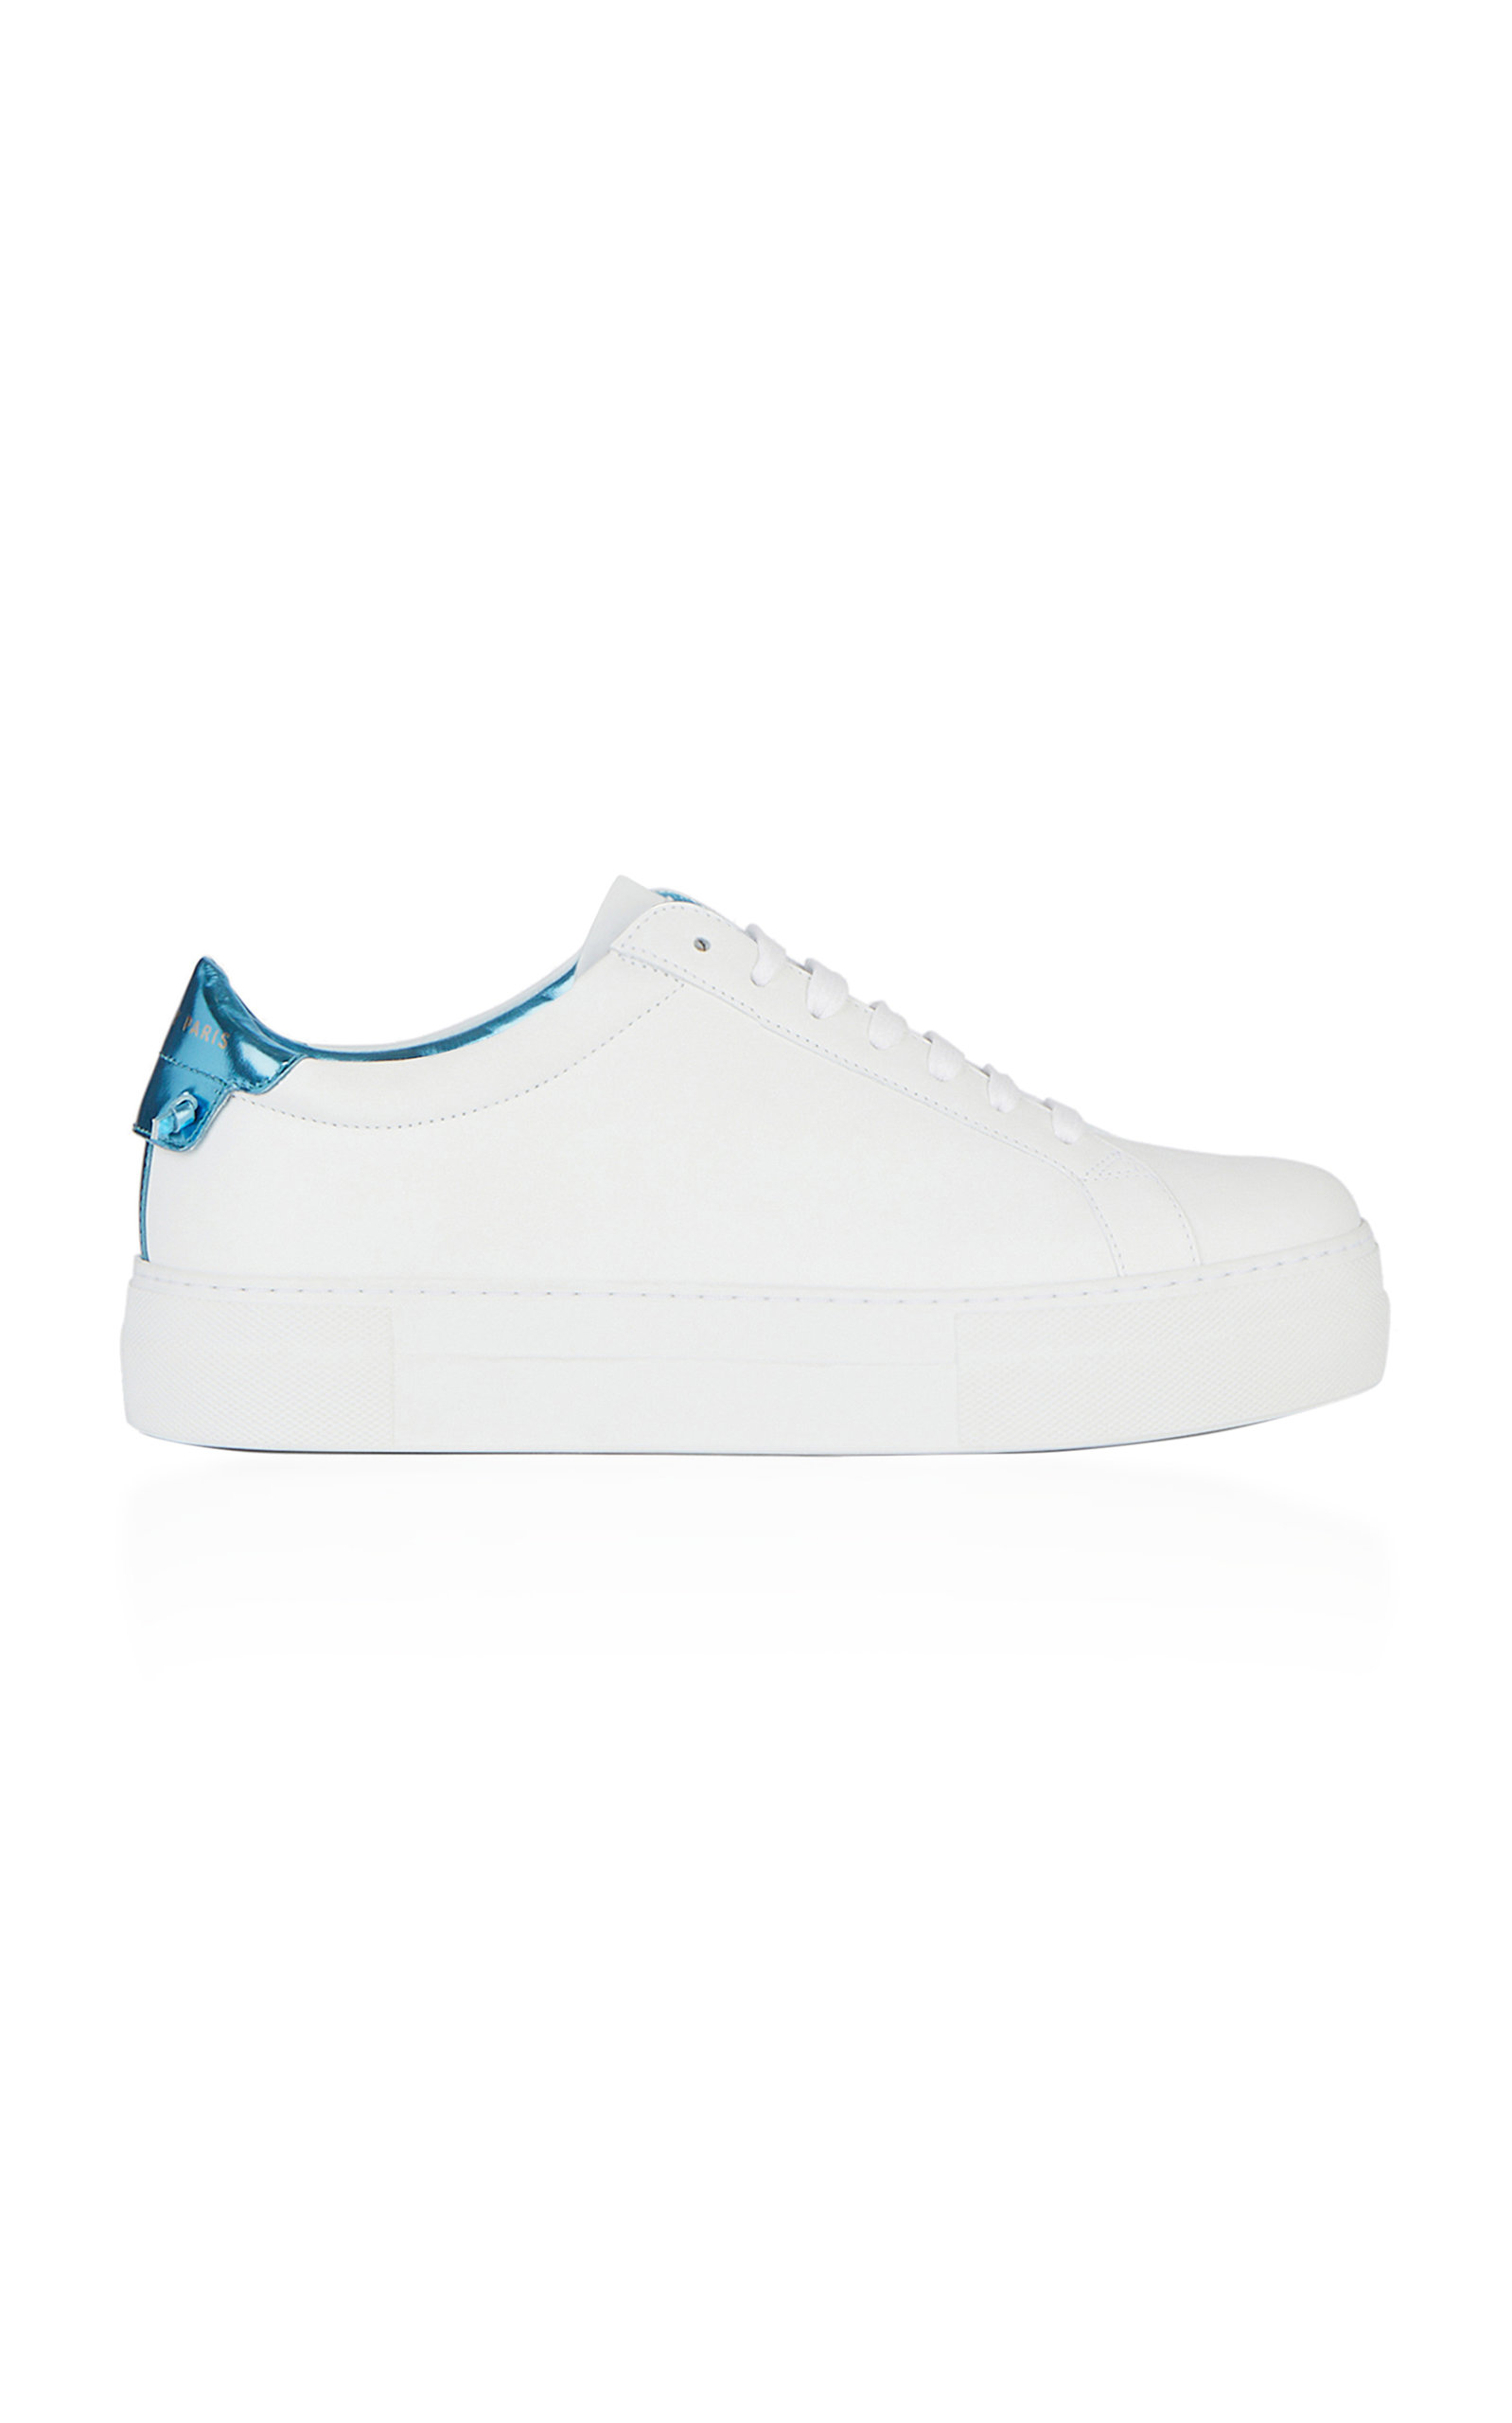 GIVENCHY URBAN STREET PLATFORM LEATHER SNEAKERS